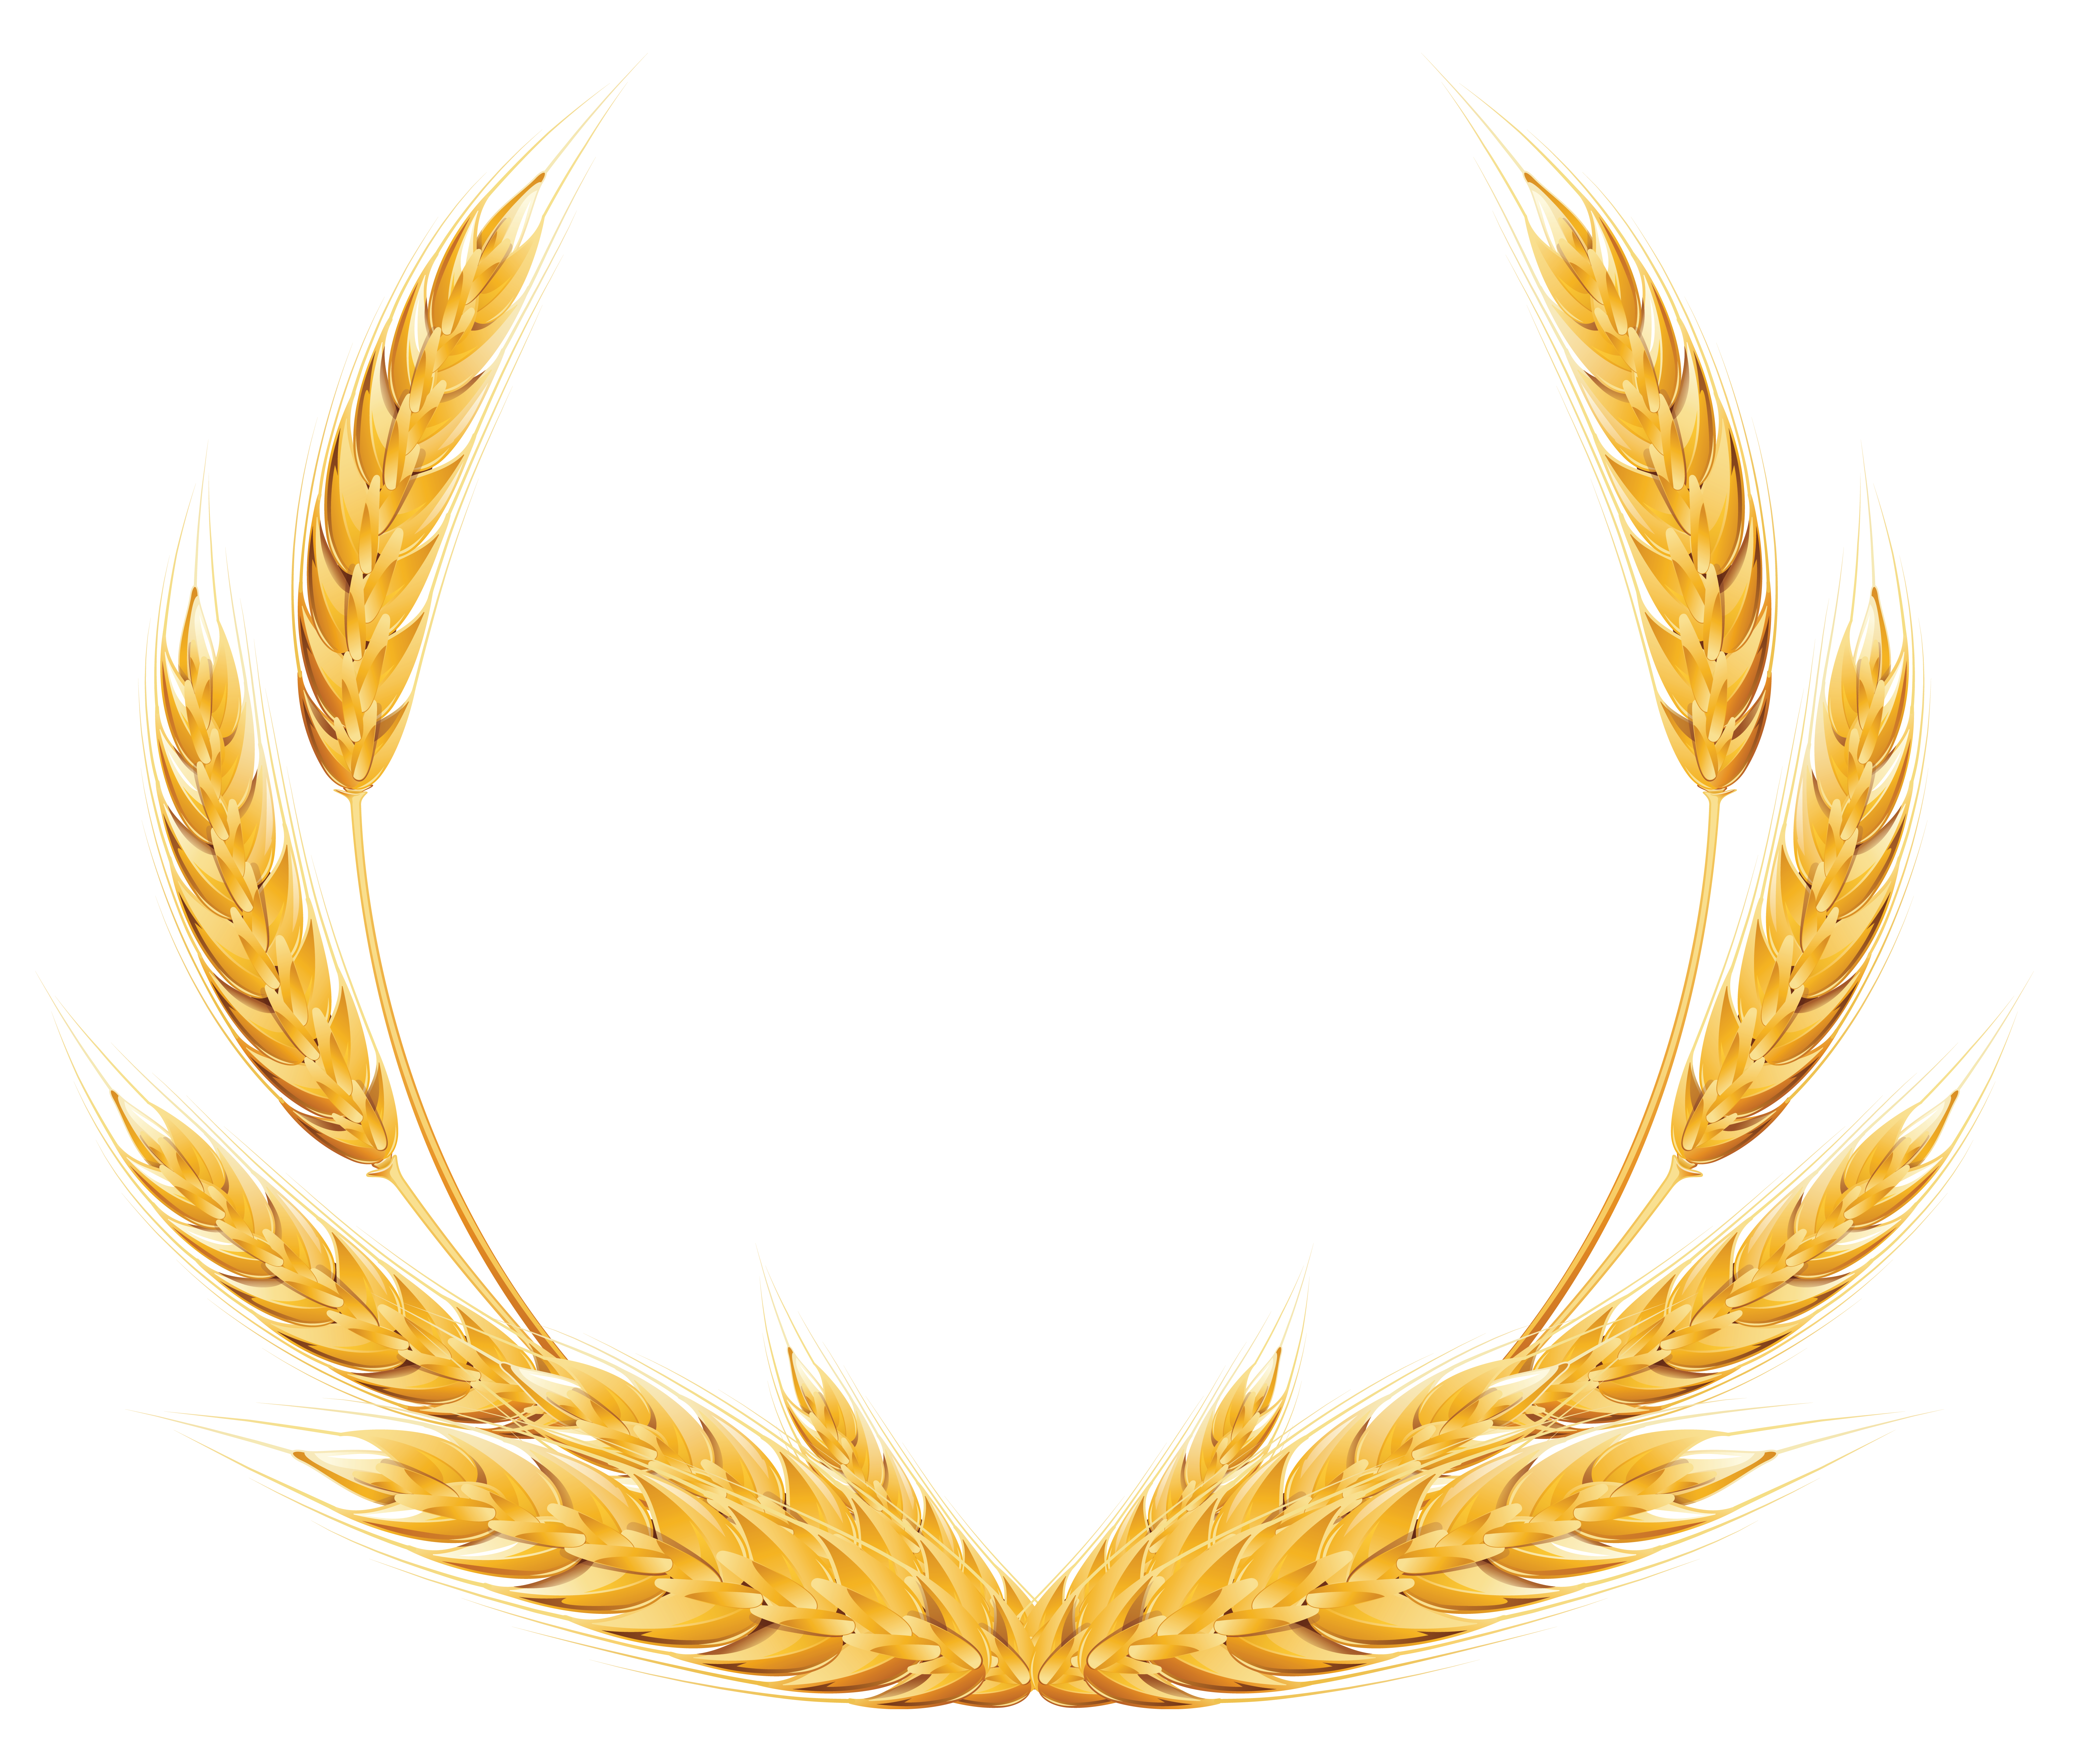 Wheat decoration png image. Clipart bread grain